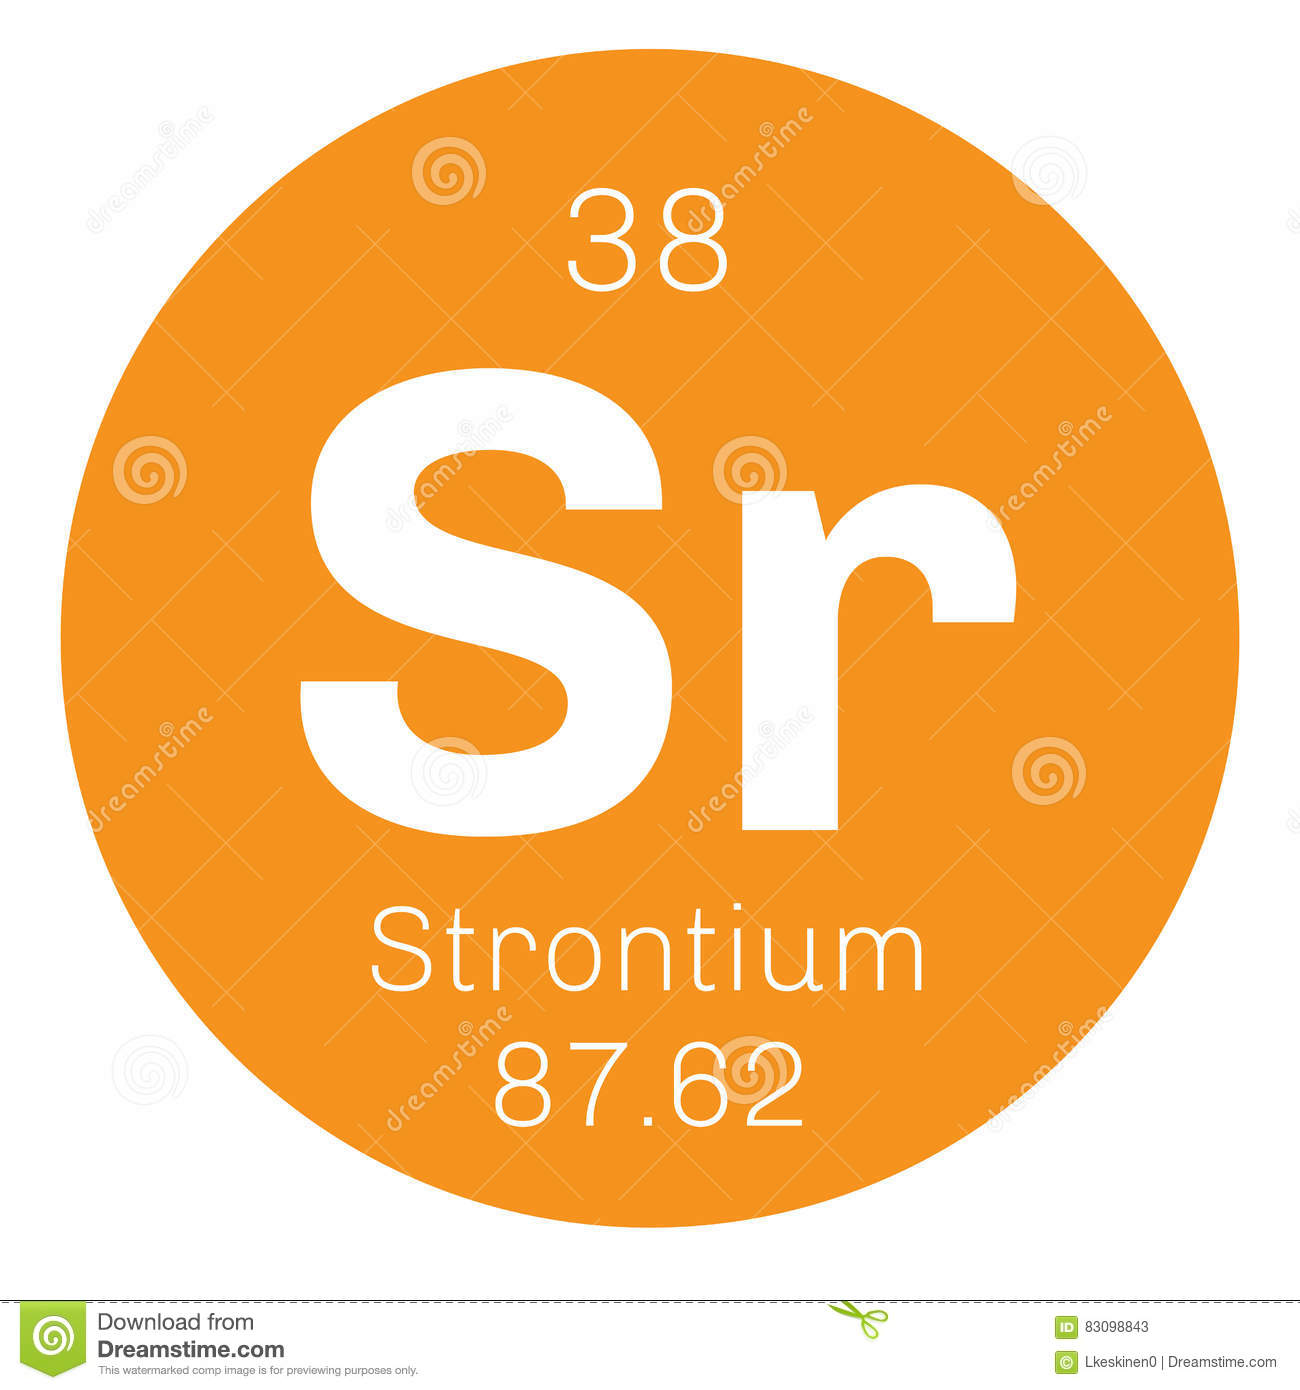 Strontium Chemical Element Stock Vector Illustration Of Number